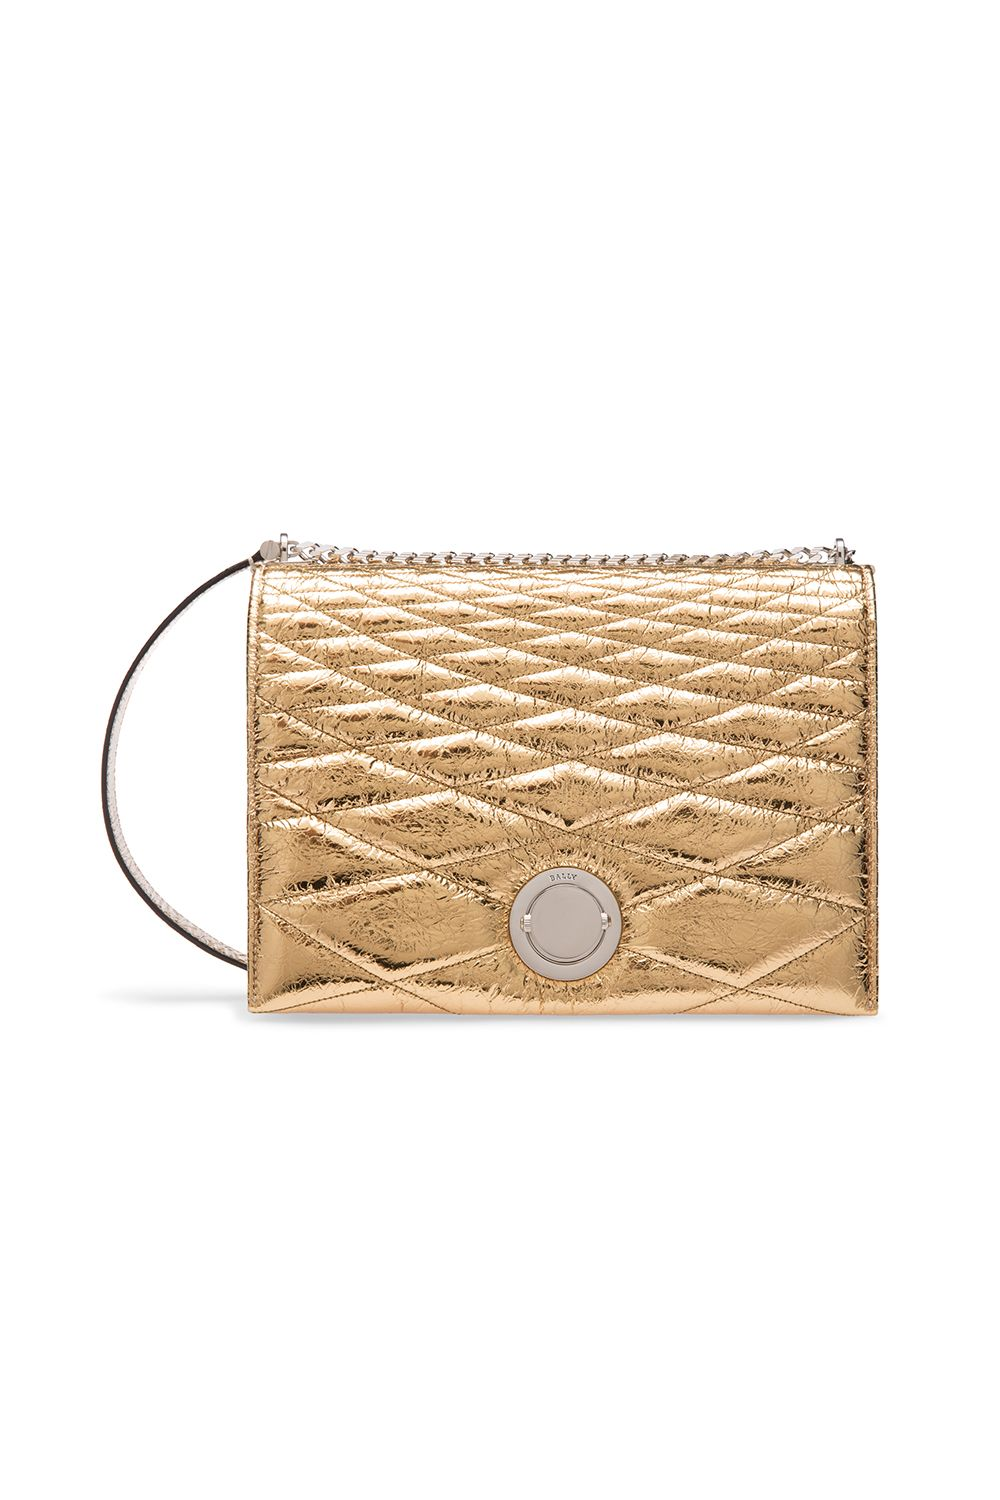 """<p>Stand out from the little-black-bag crowd with a gold style that gives off serious '70s disco vibes.</p><p>$1,995, available at Bally Rodeo Drive<span class=""""redactor-invisible-space"""" data-verified=""""redactor"""" data-redactor-tag=""""span"""" data-redactor-class=""""redactor-invisible-space"""">.</span><br></p>"""